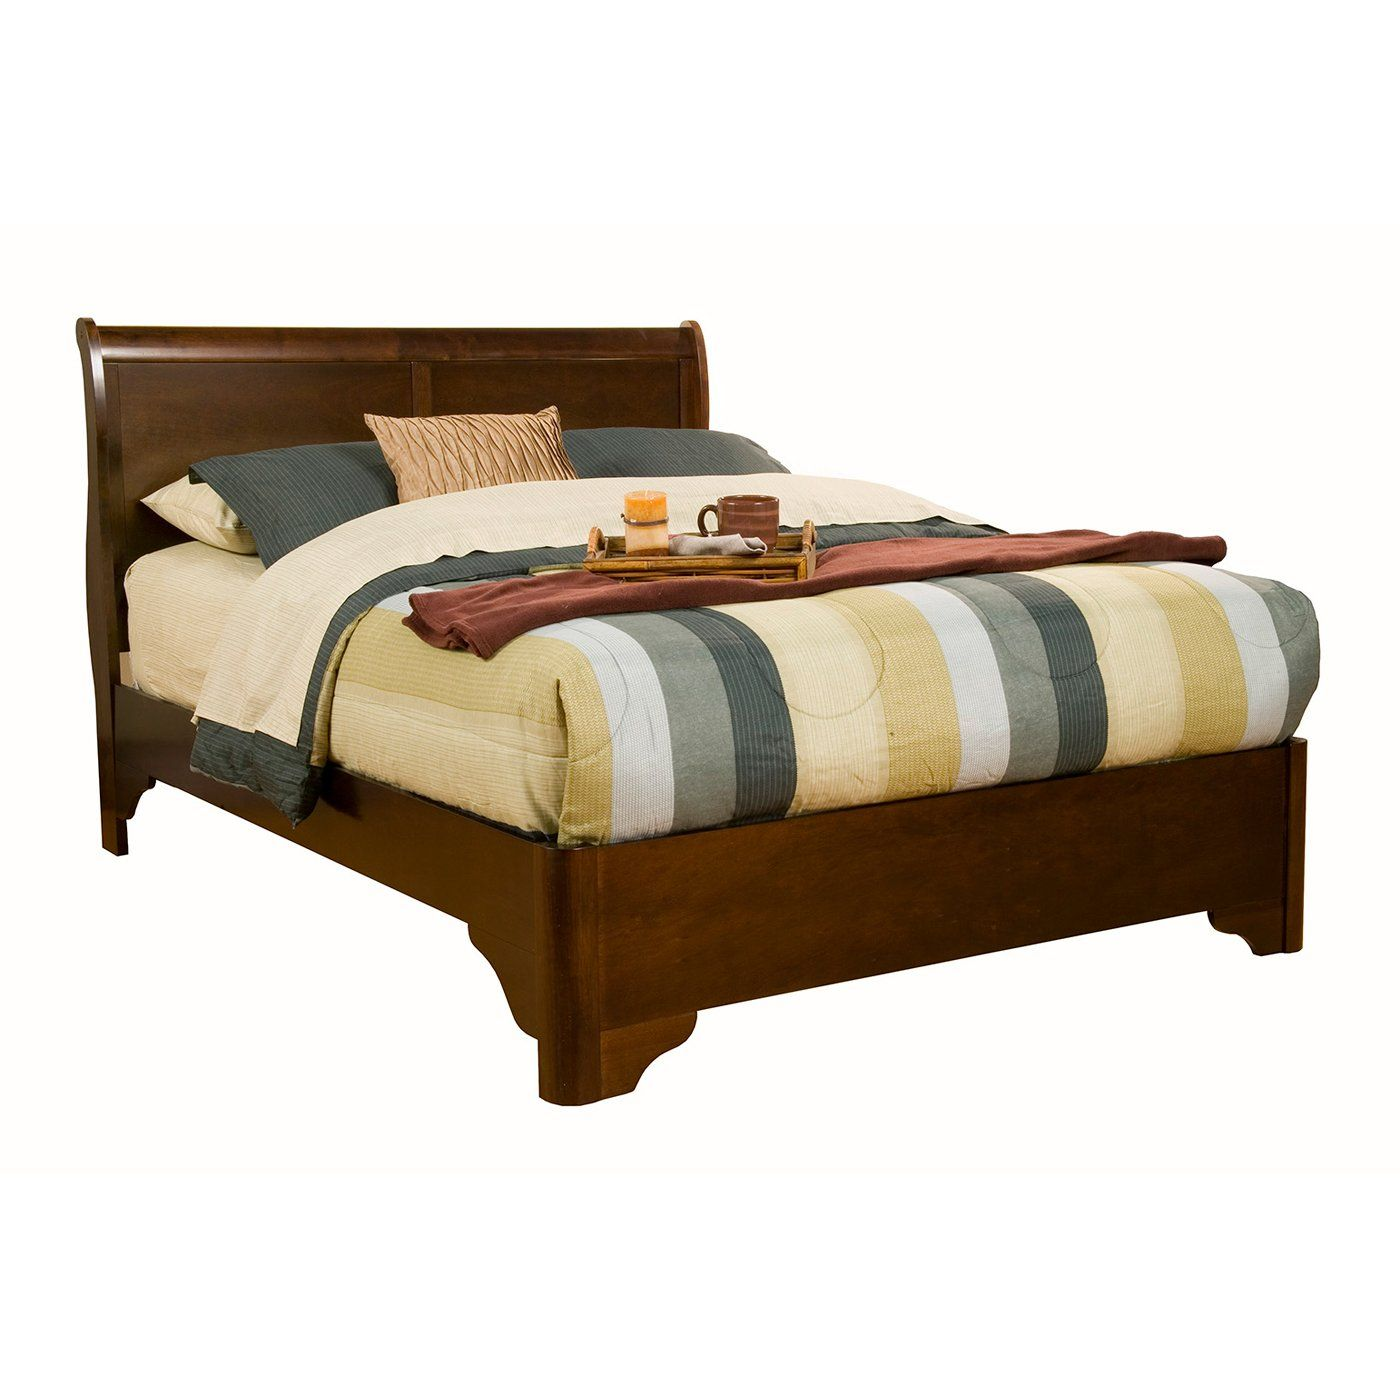 Alpine Furniture 3200 Chesapeake Low Profile Sleigh Bed